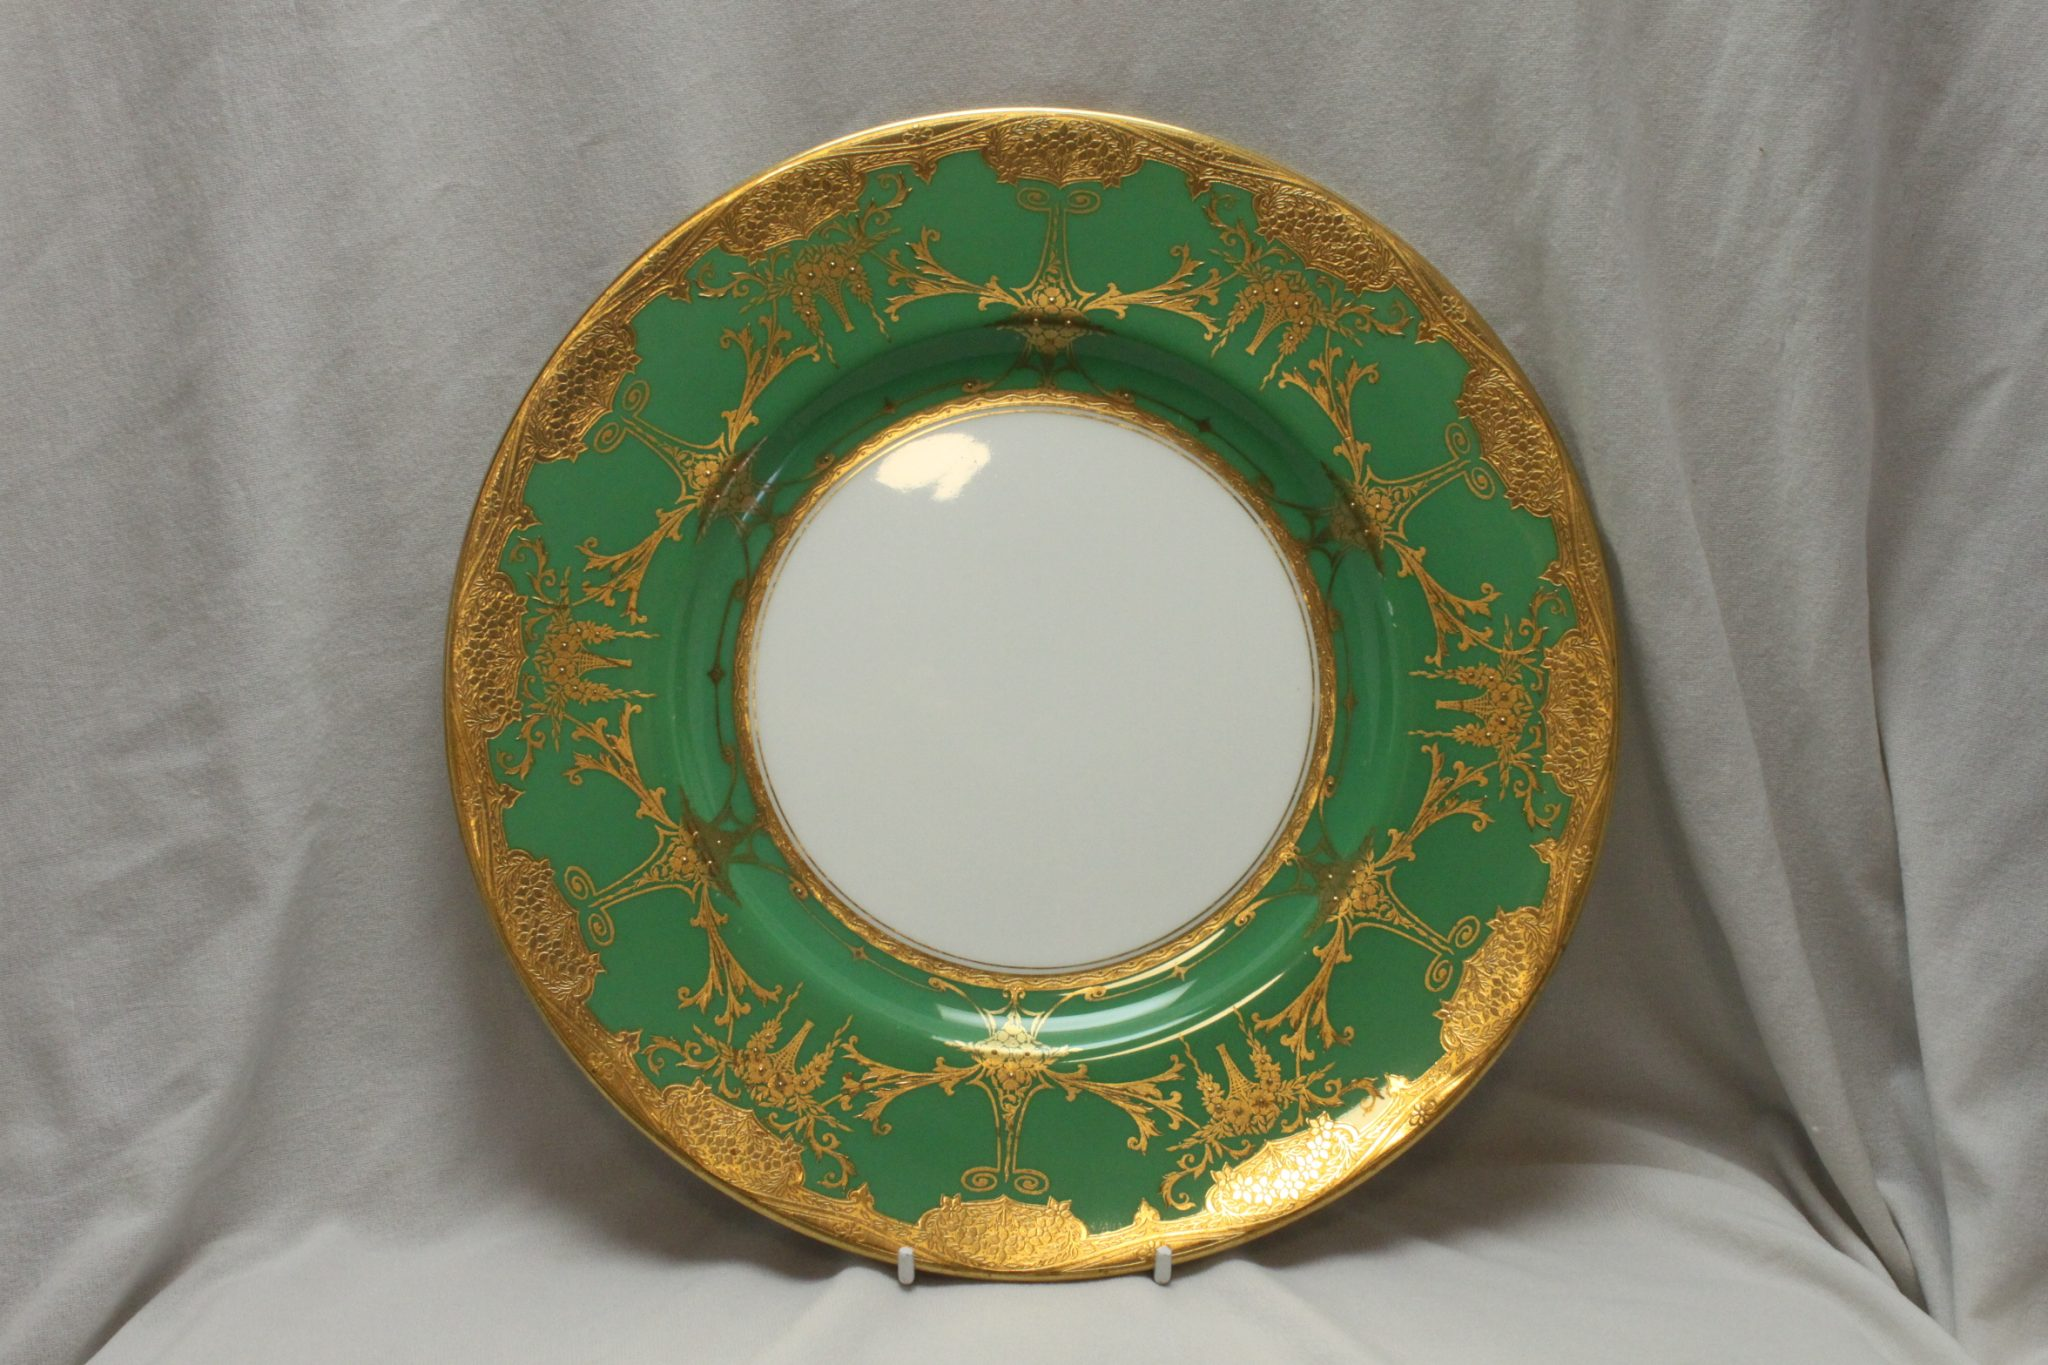 Minton gilded plate